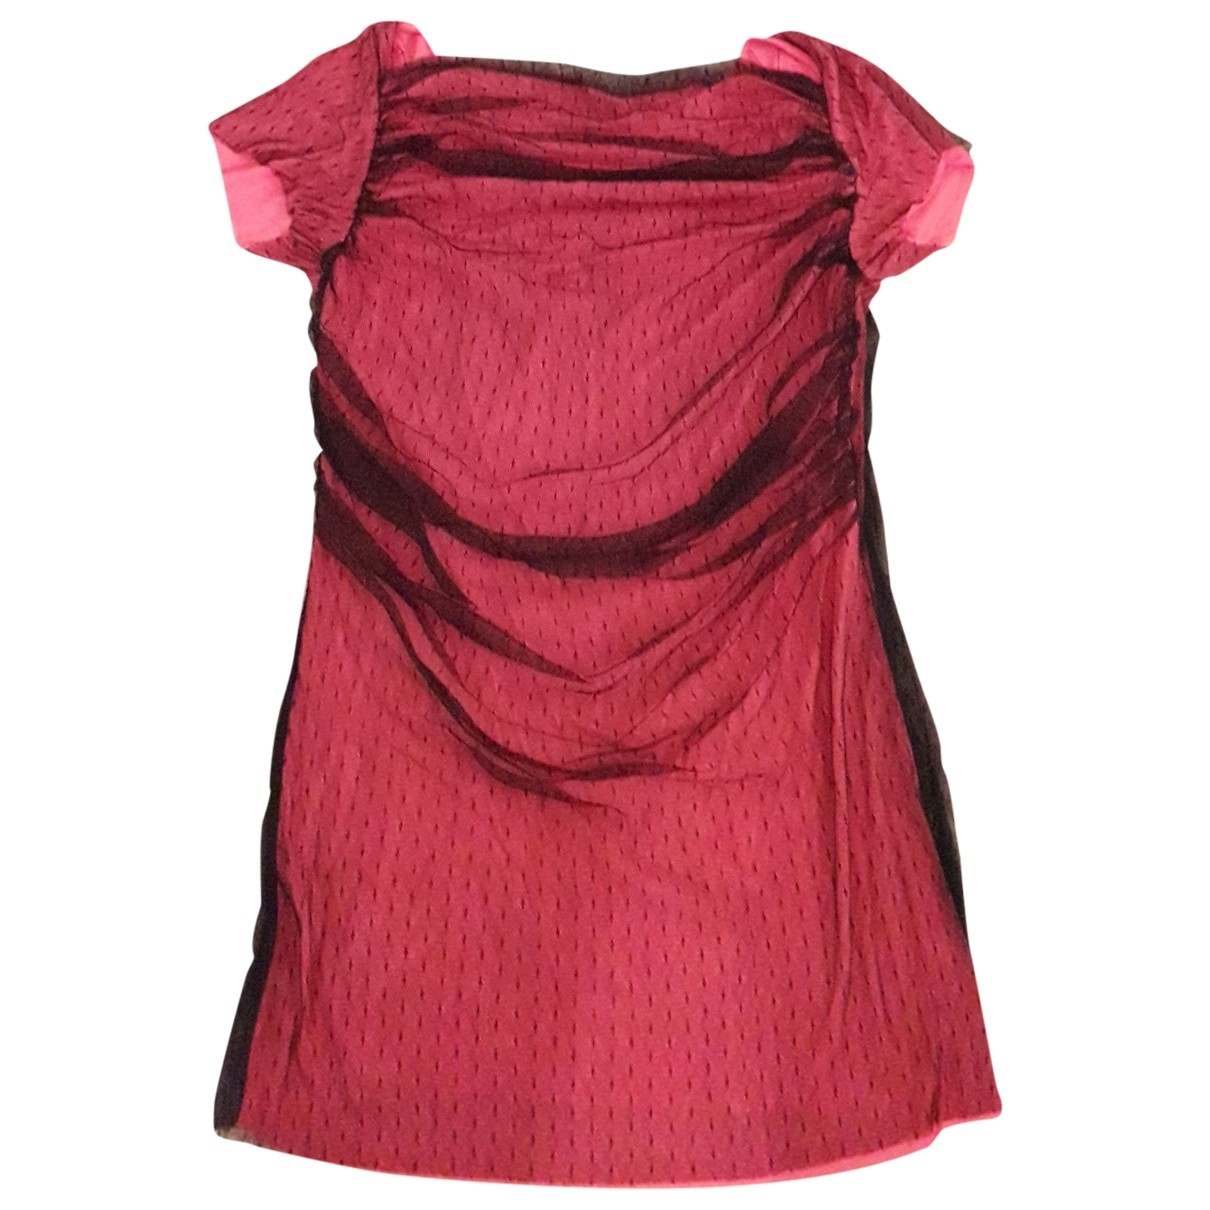 Moschino Cheap And Chic \N Kleid in  Rosa Baumwolle